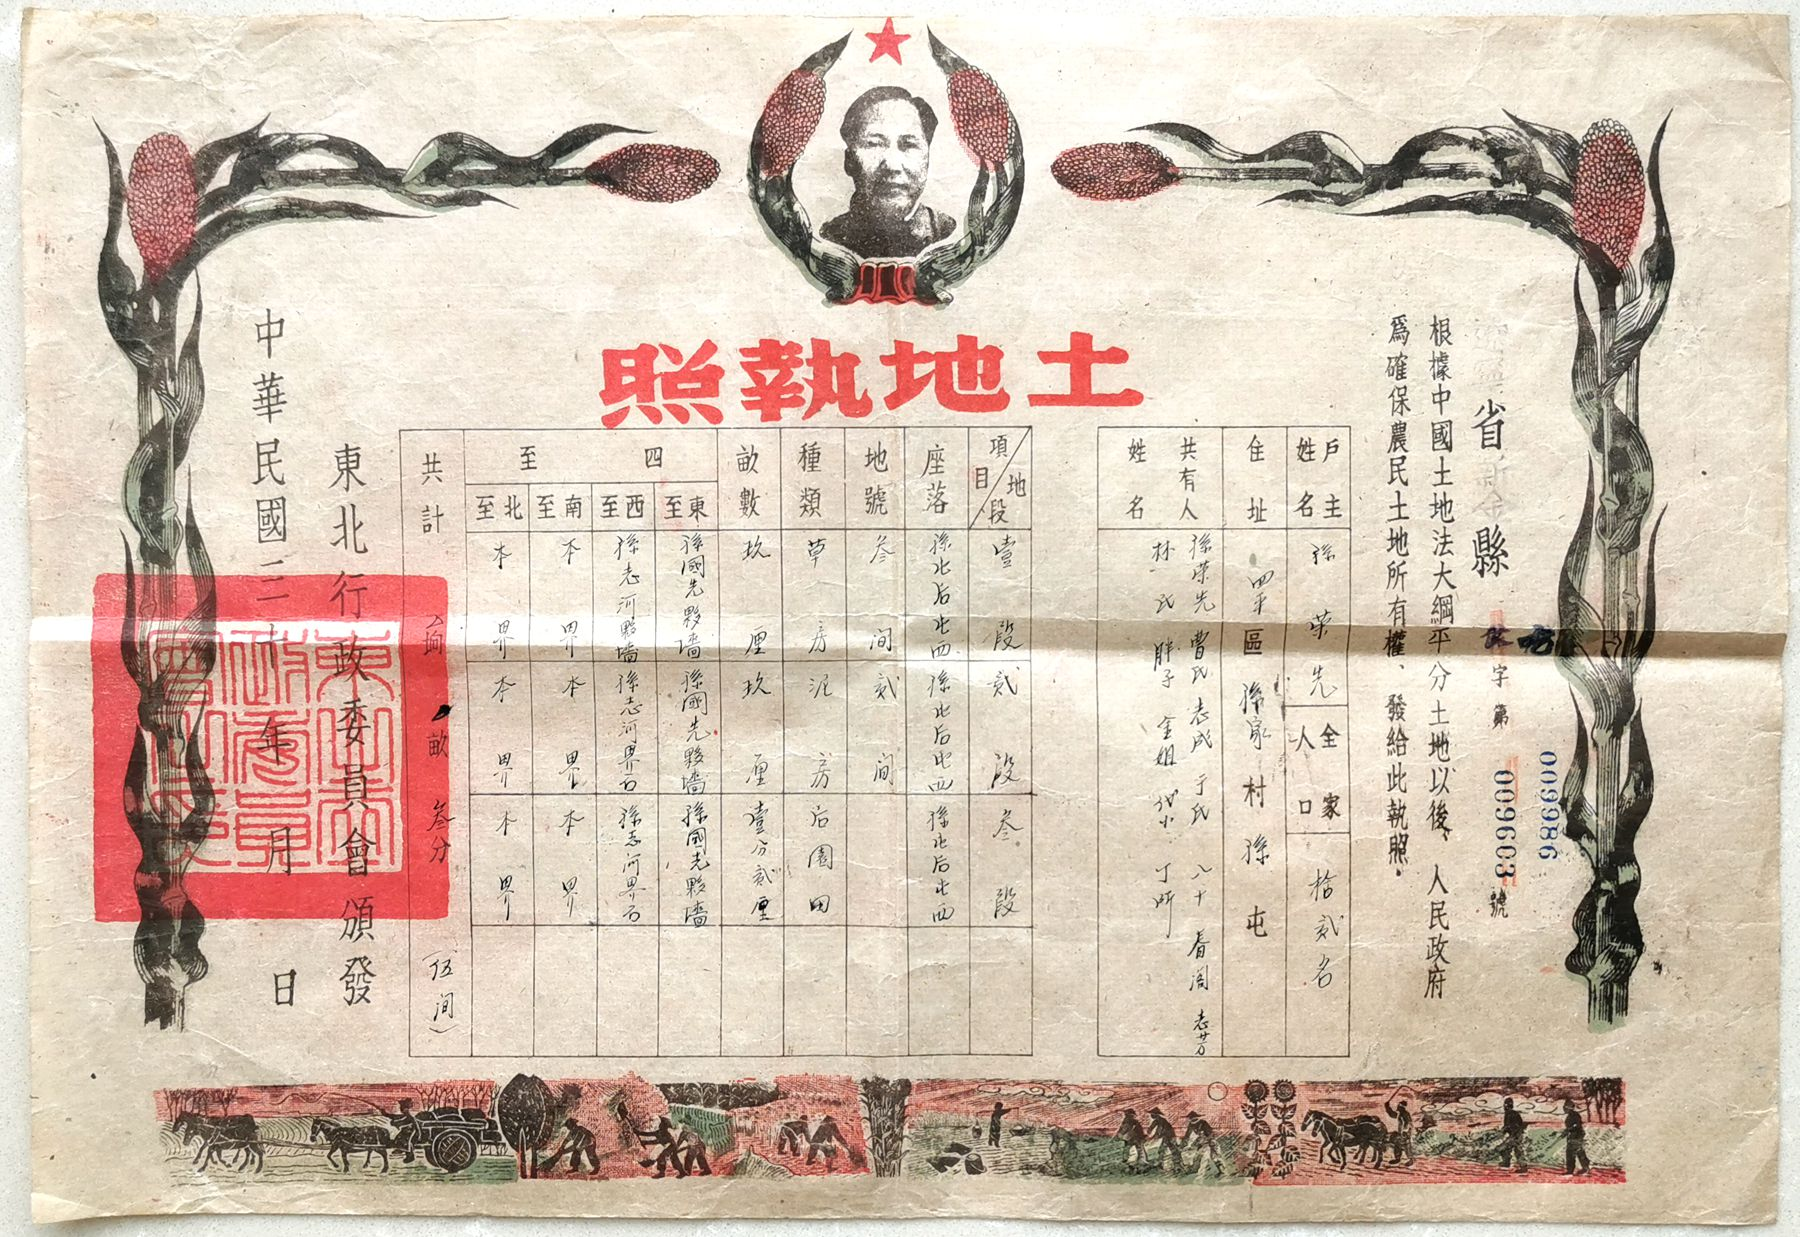 D4022, Land Deed of China, 1950's with Chairman Mao, Liangning Province